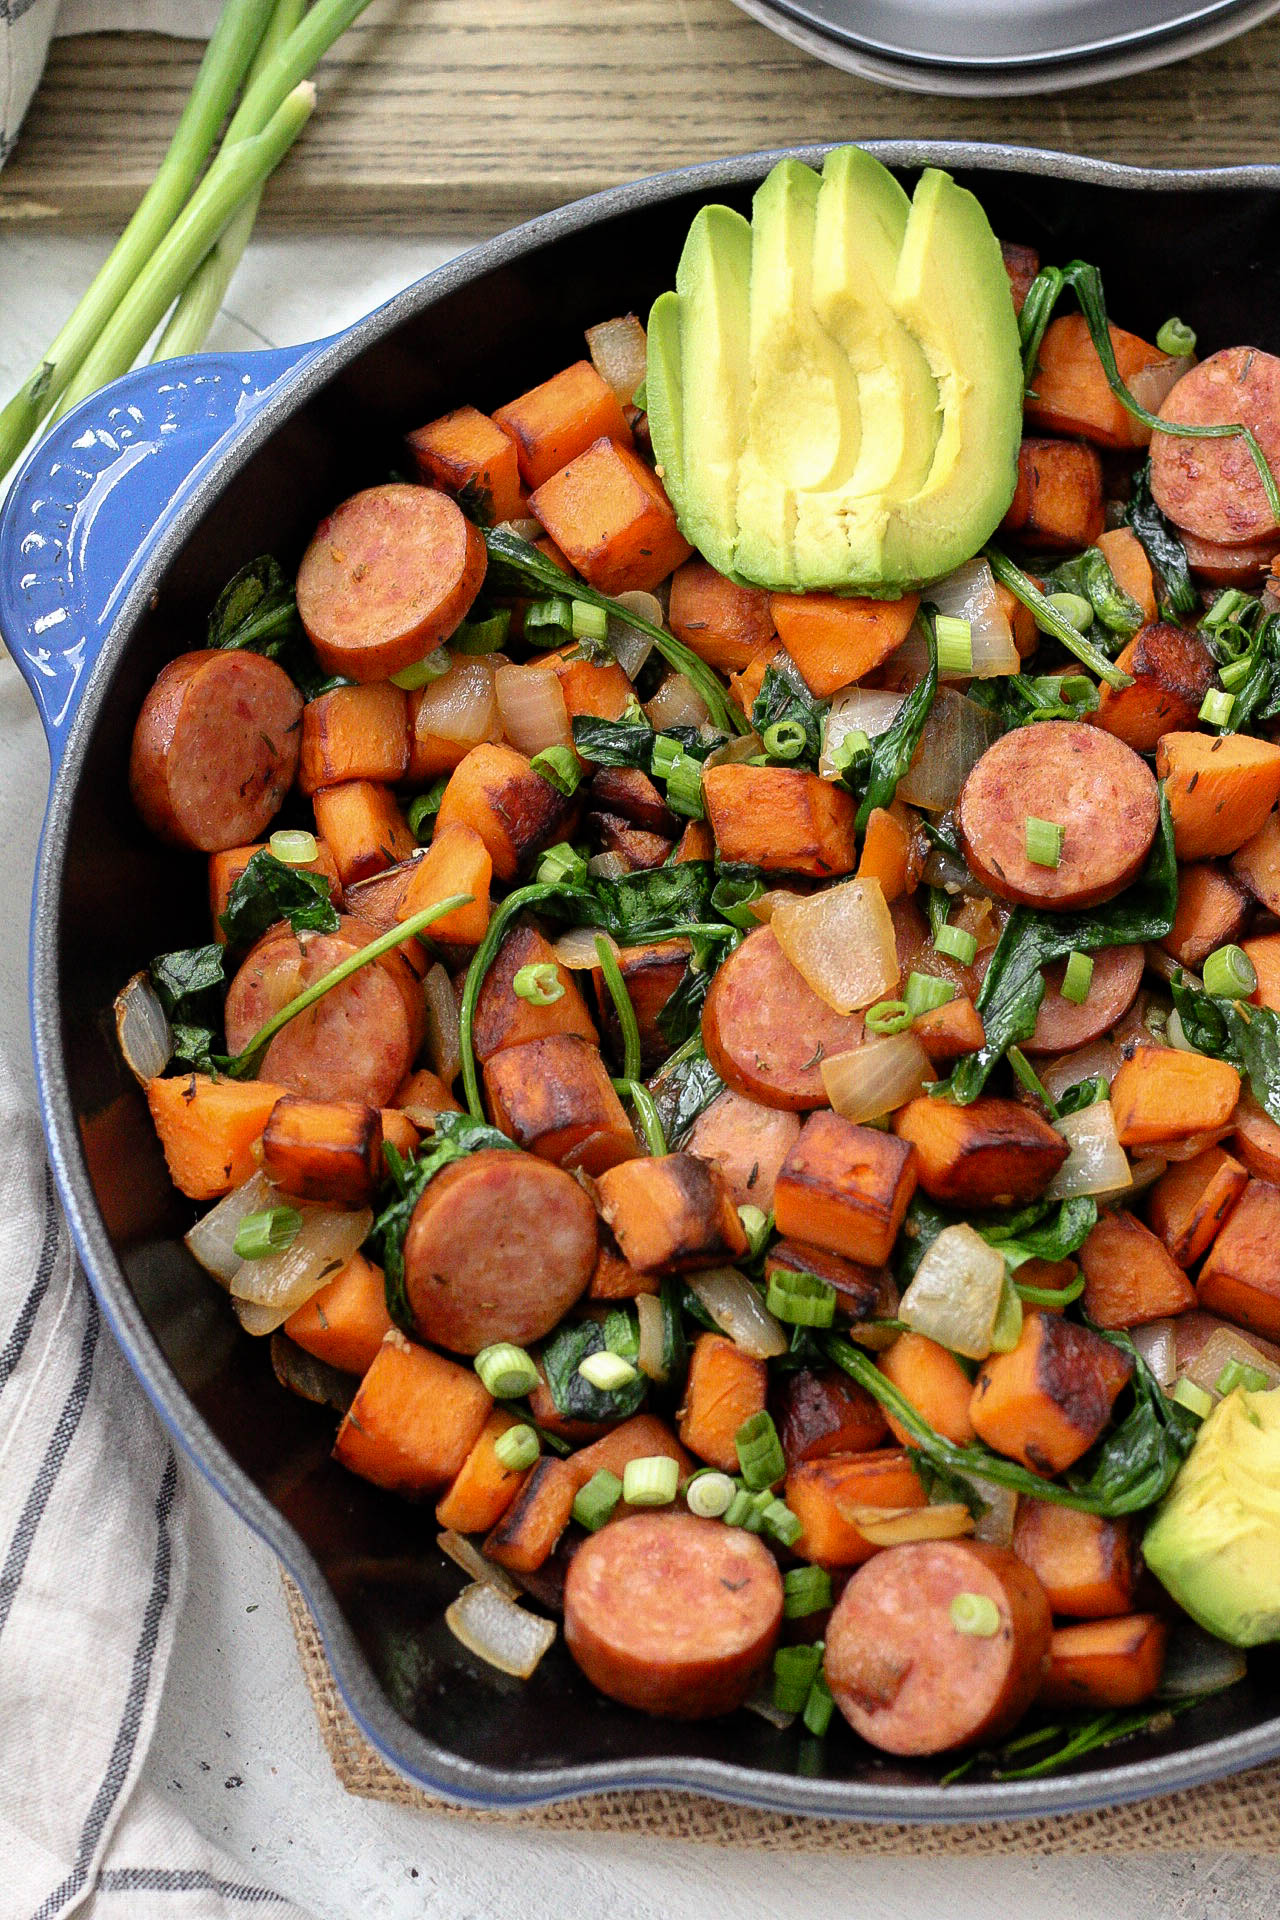 Sausage And Sweet Potato Paleo Egg Free Breakfast Skillet Whole30 And 15 Minutes